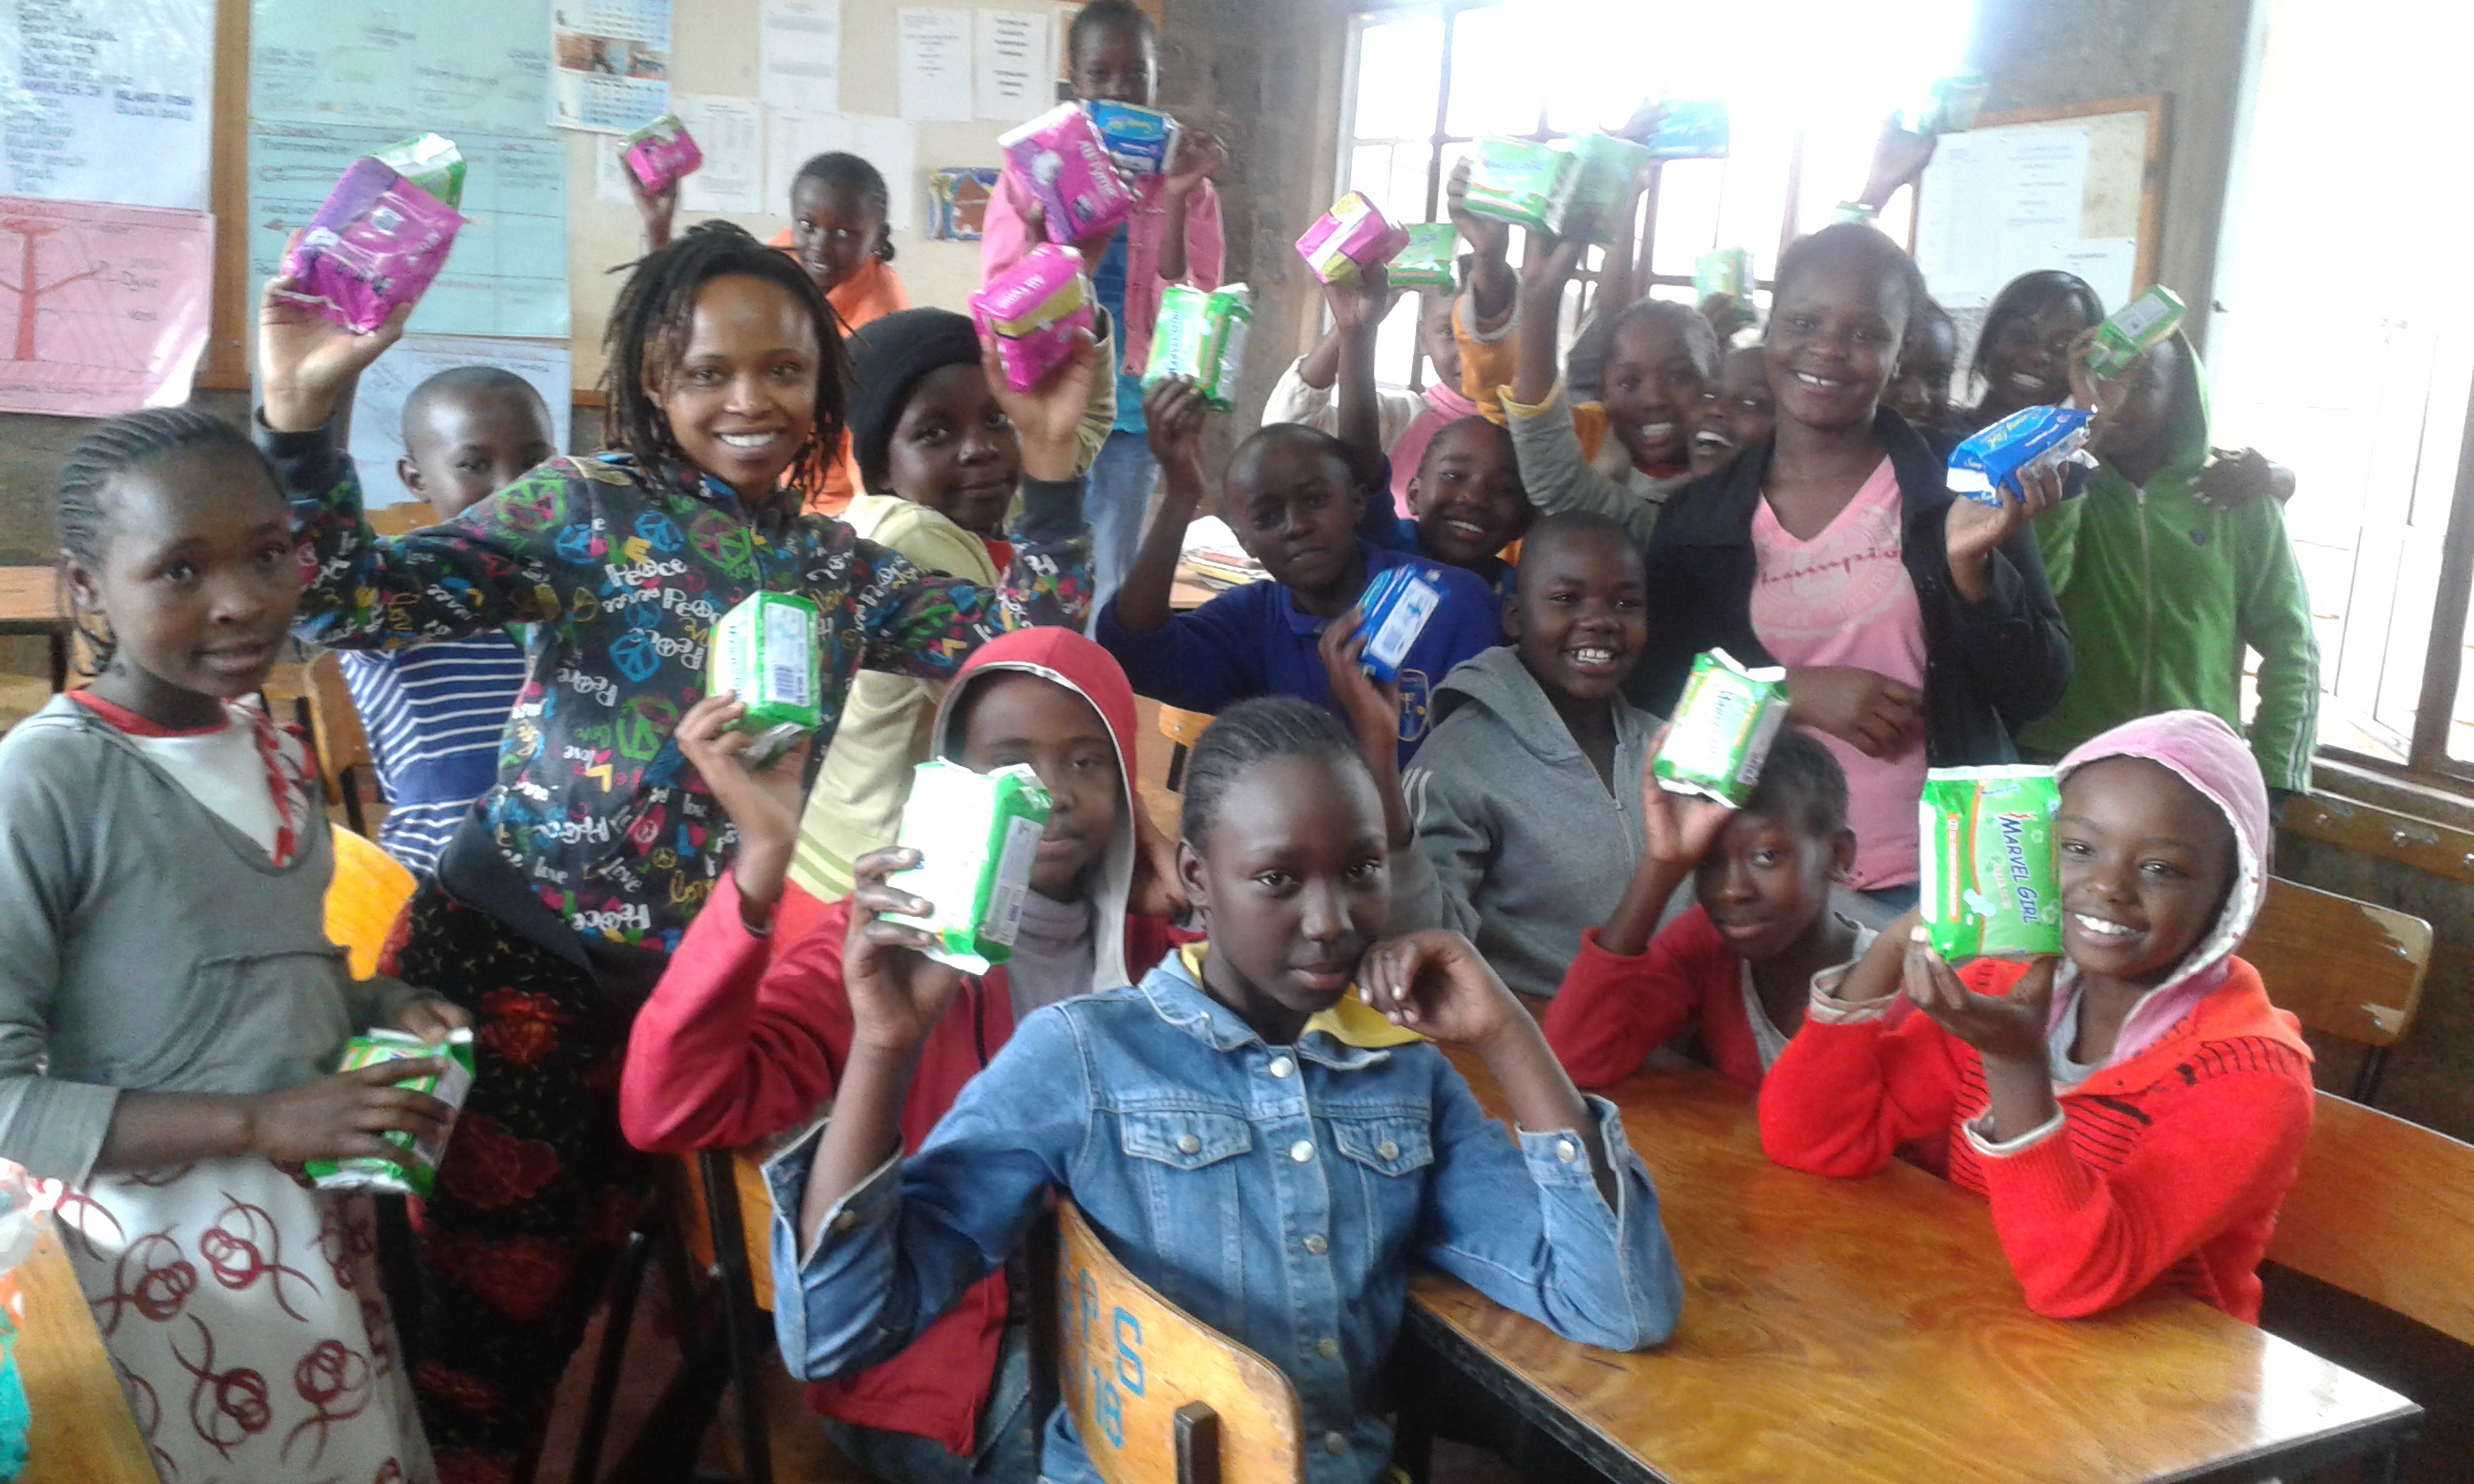 A section of the beneficiaries of the sanitary towels issued by GIrl Smile Initiative